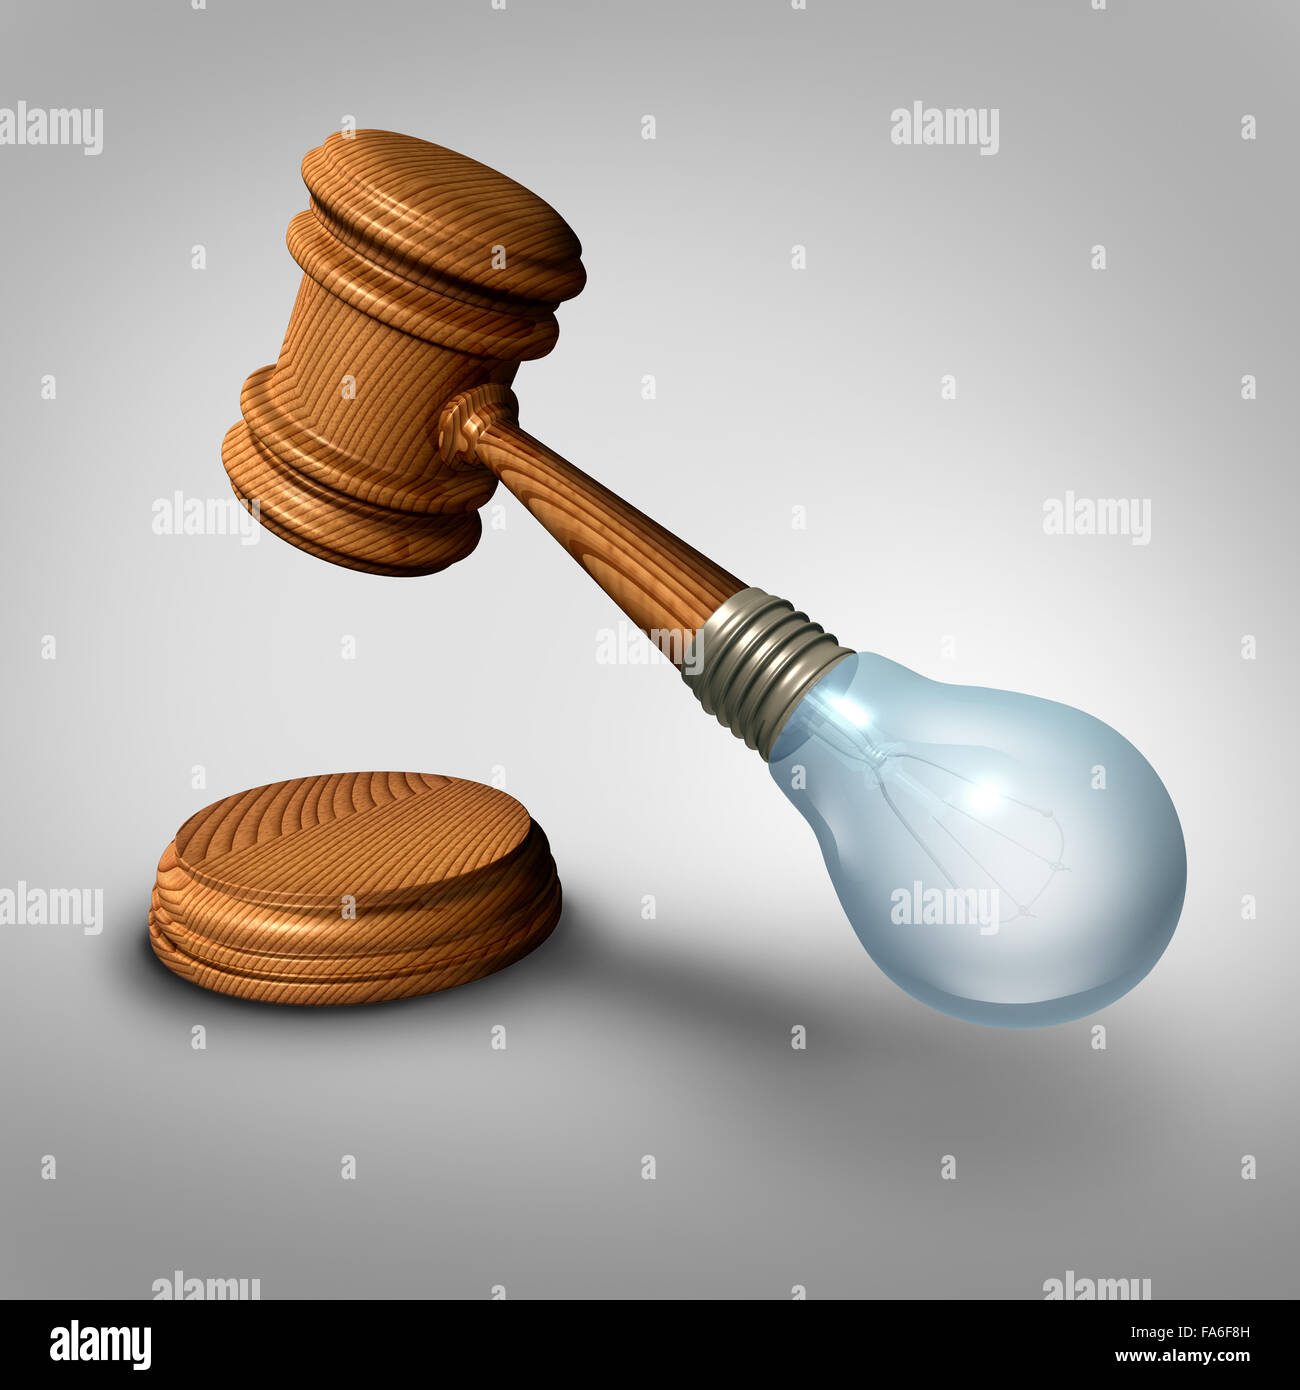 Law ideas concept and judgement symbol as a judge mallet or gavel made with a lightbulb  as a metaphor for new legislation - Stock Image